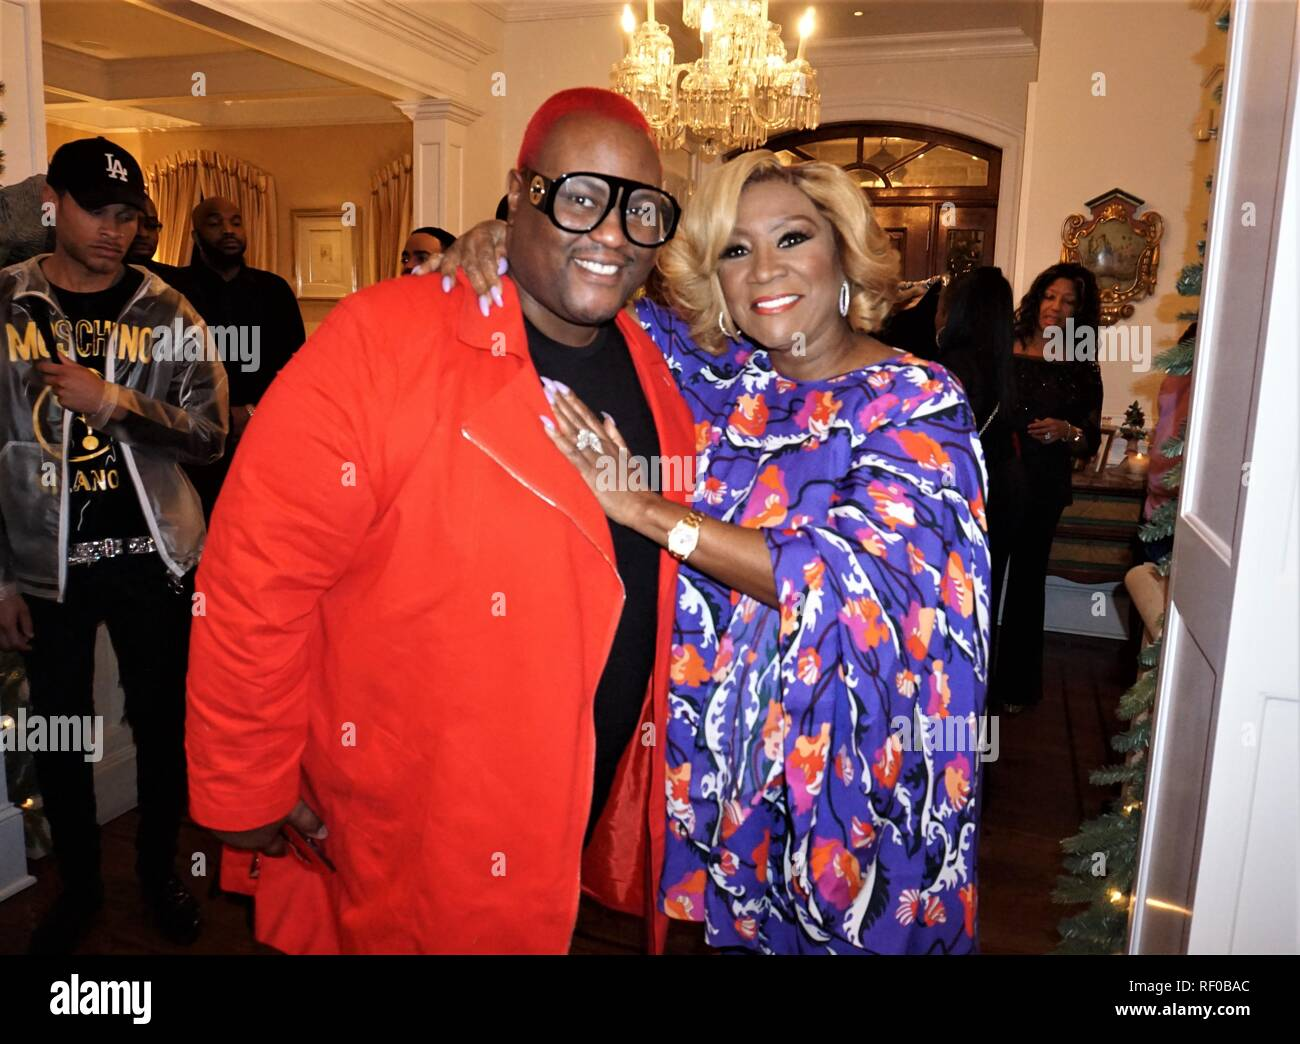 Patti Labelle This Christmas.Patti Labelle Christmas Party With James Wright The Patti